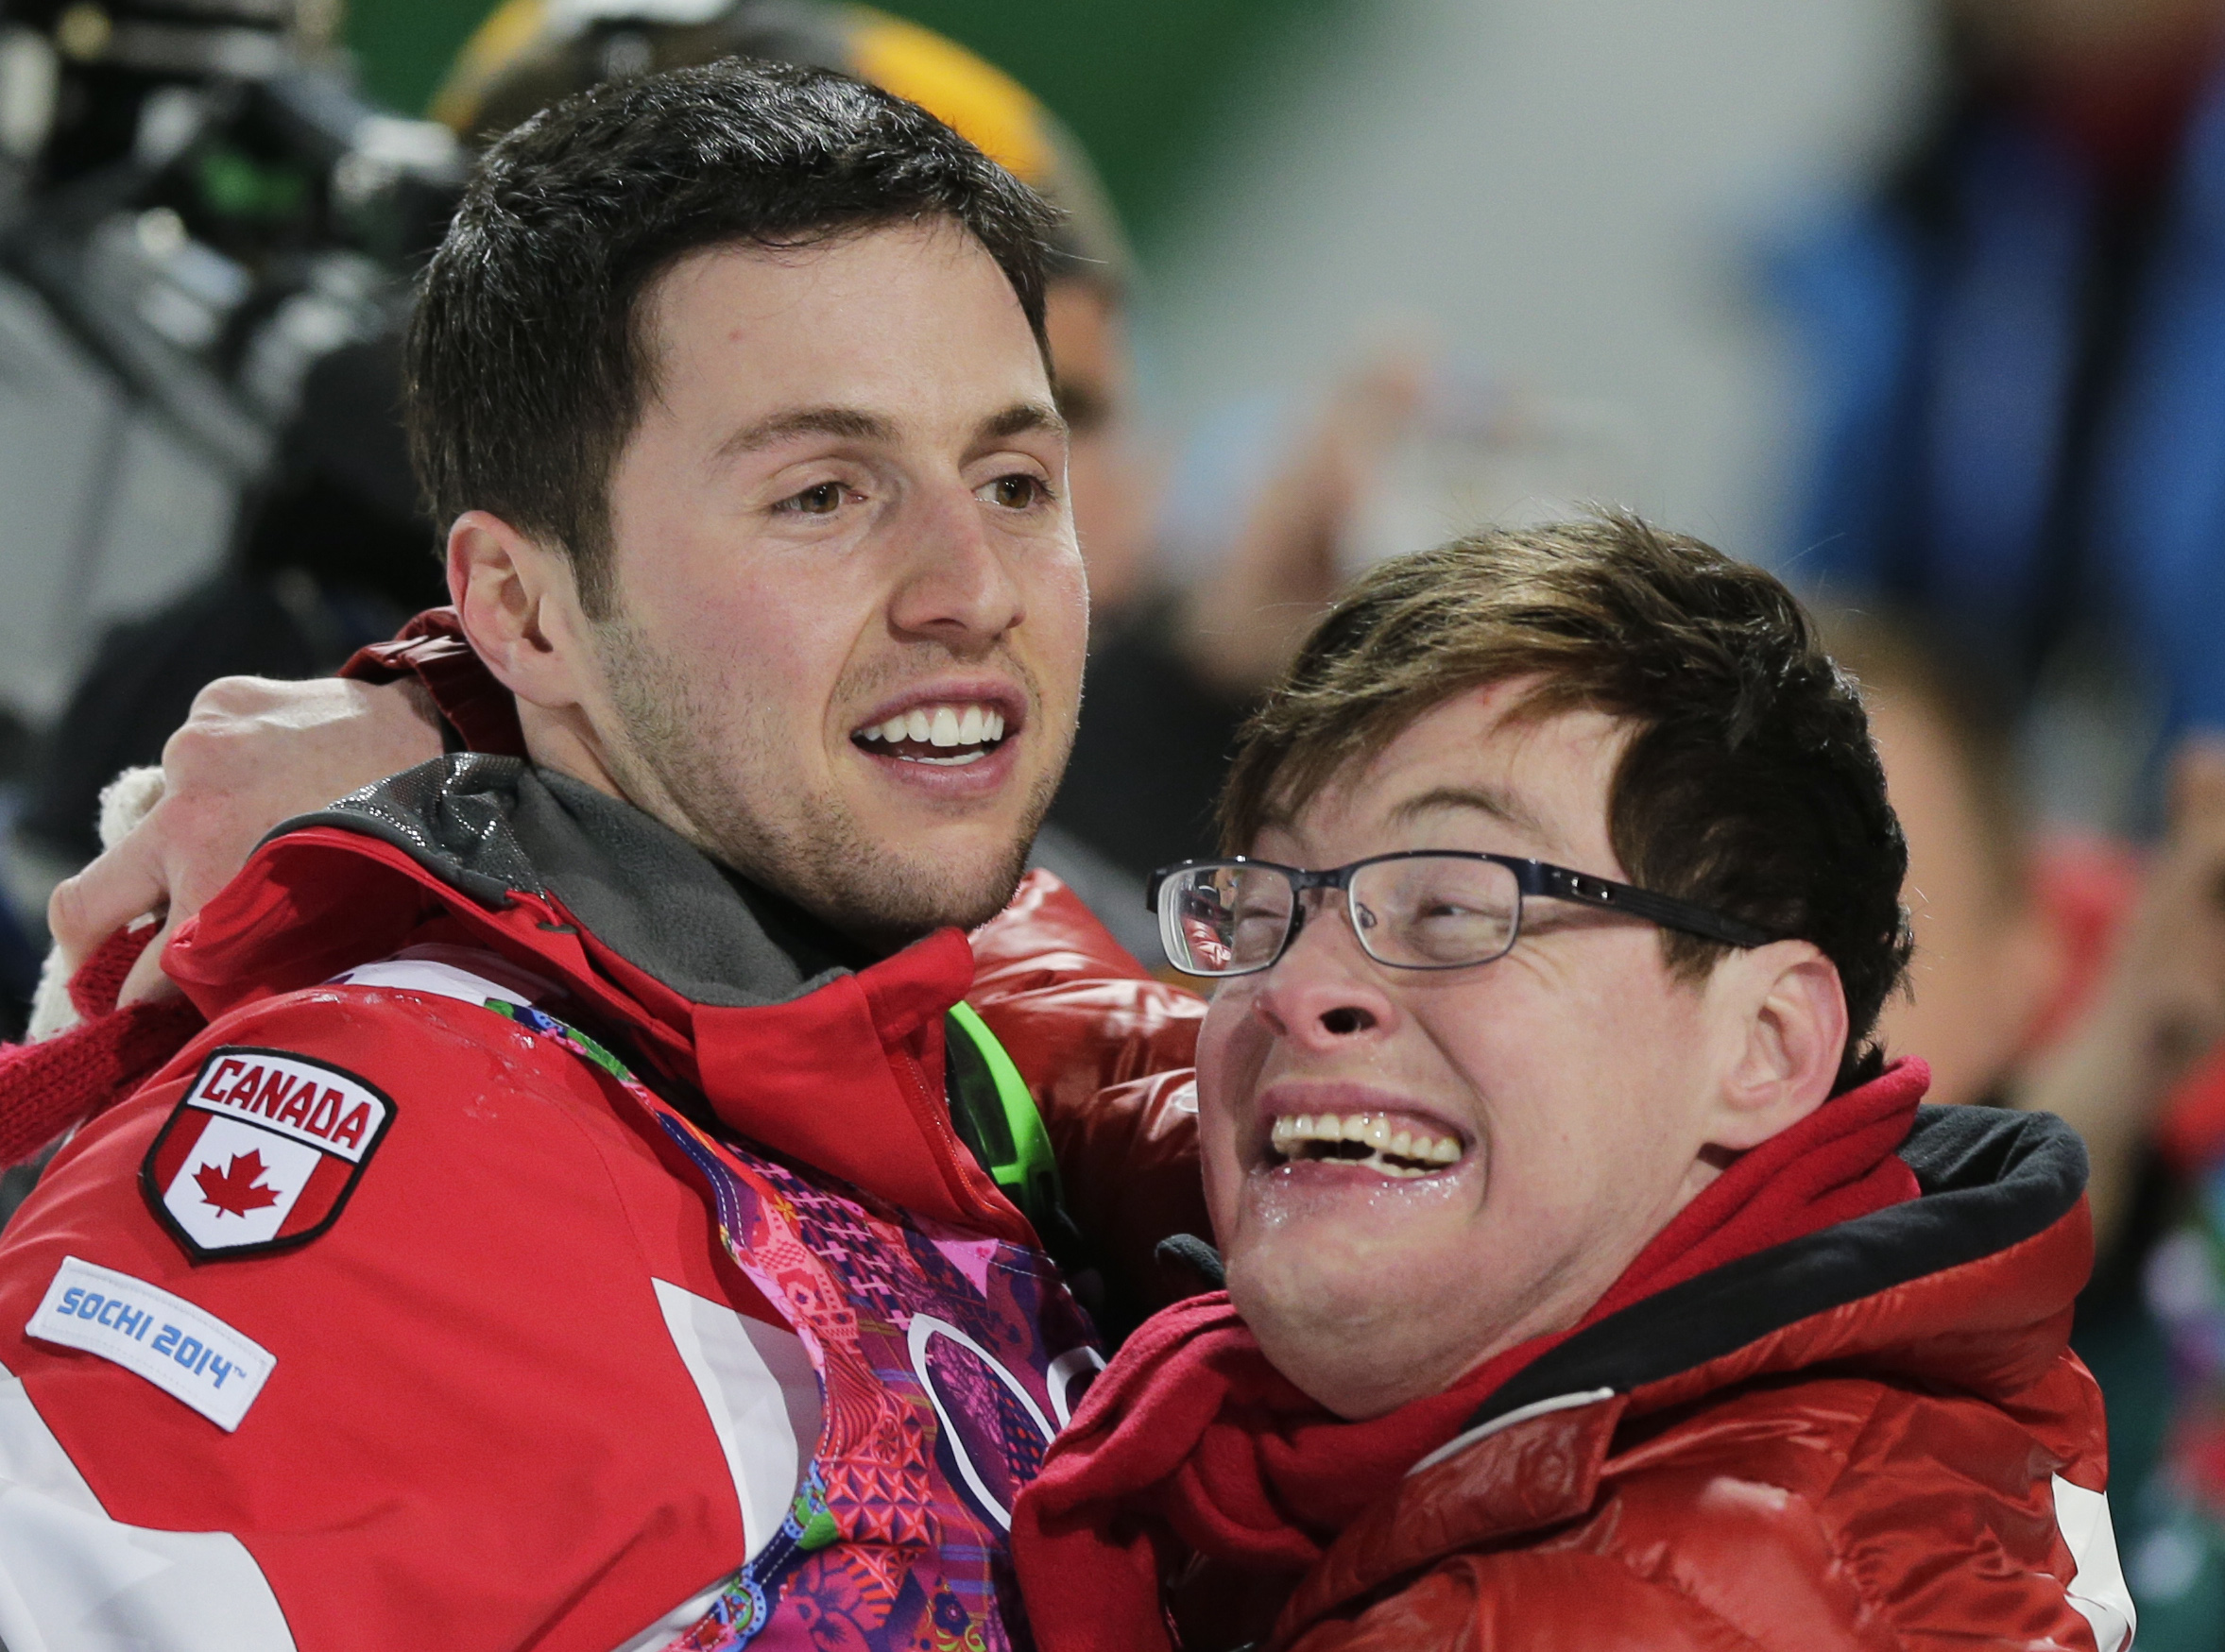 Canada's Alex Bilodeau, left, celebrates with his brother Frederic after winning the gold medal in the men's moguls final on Monday.